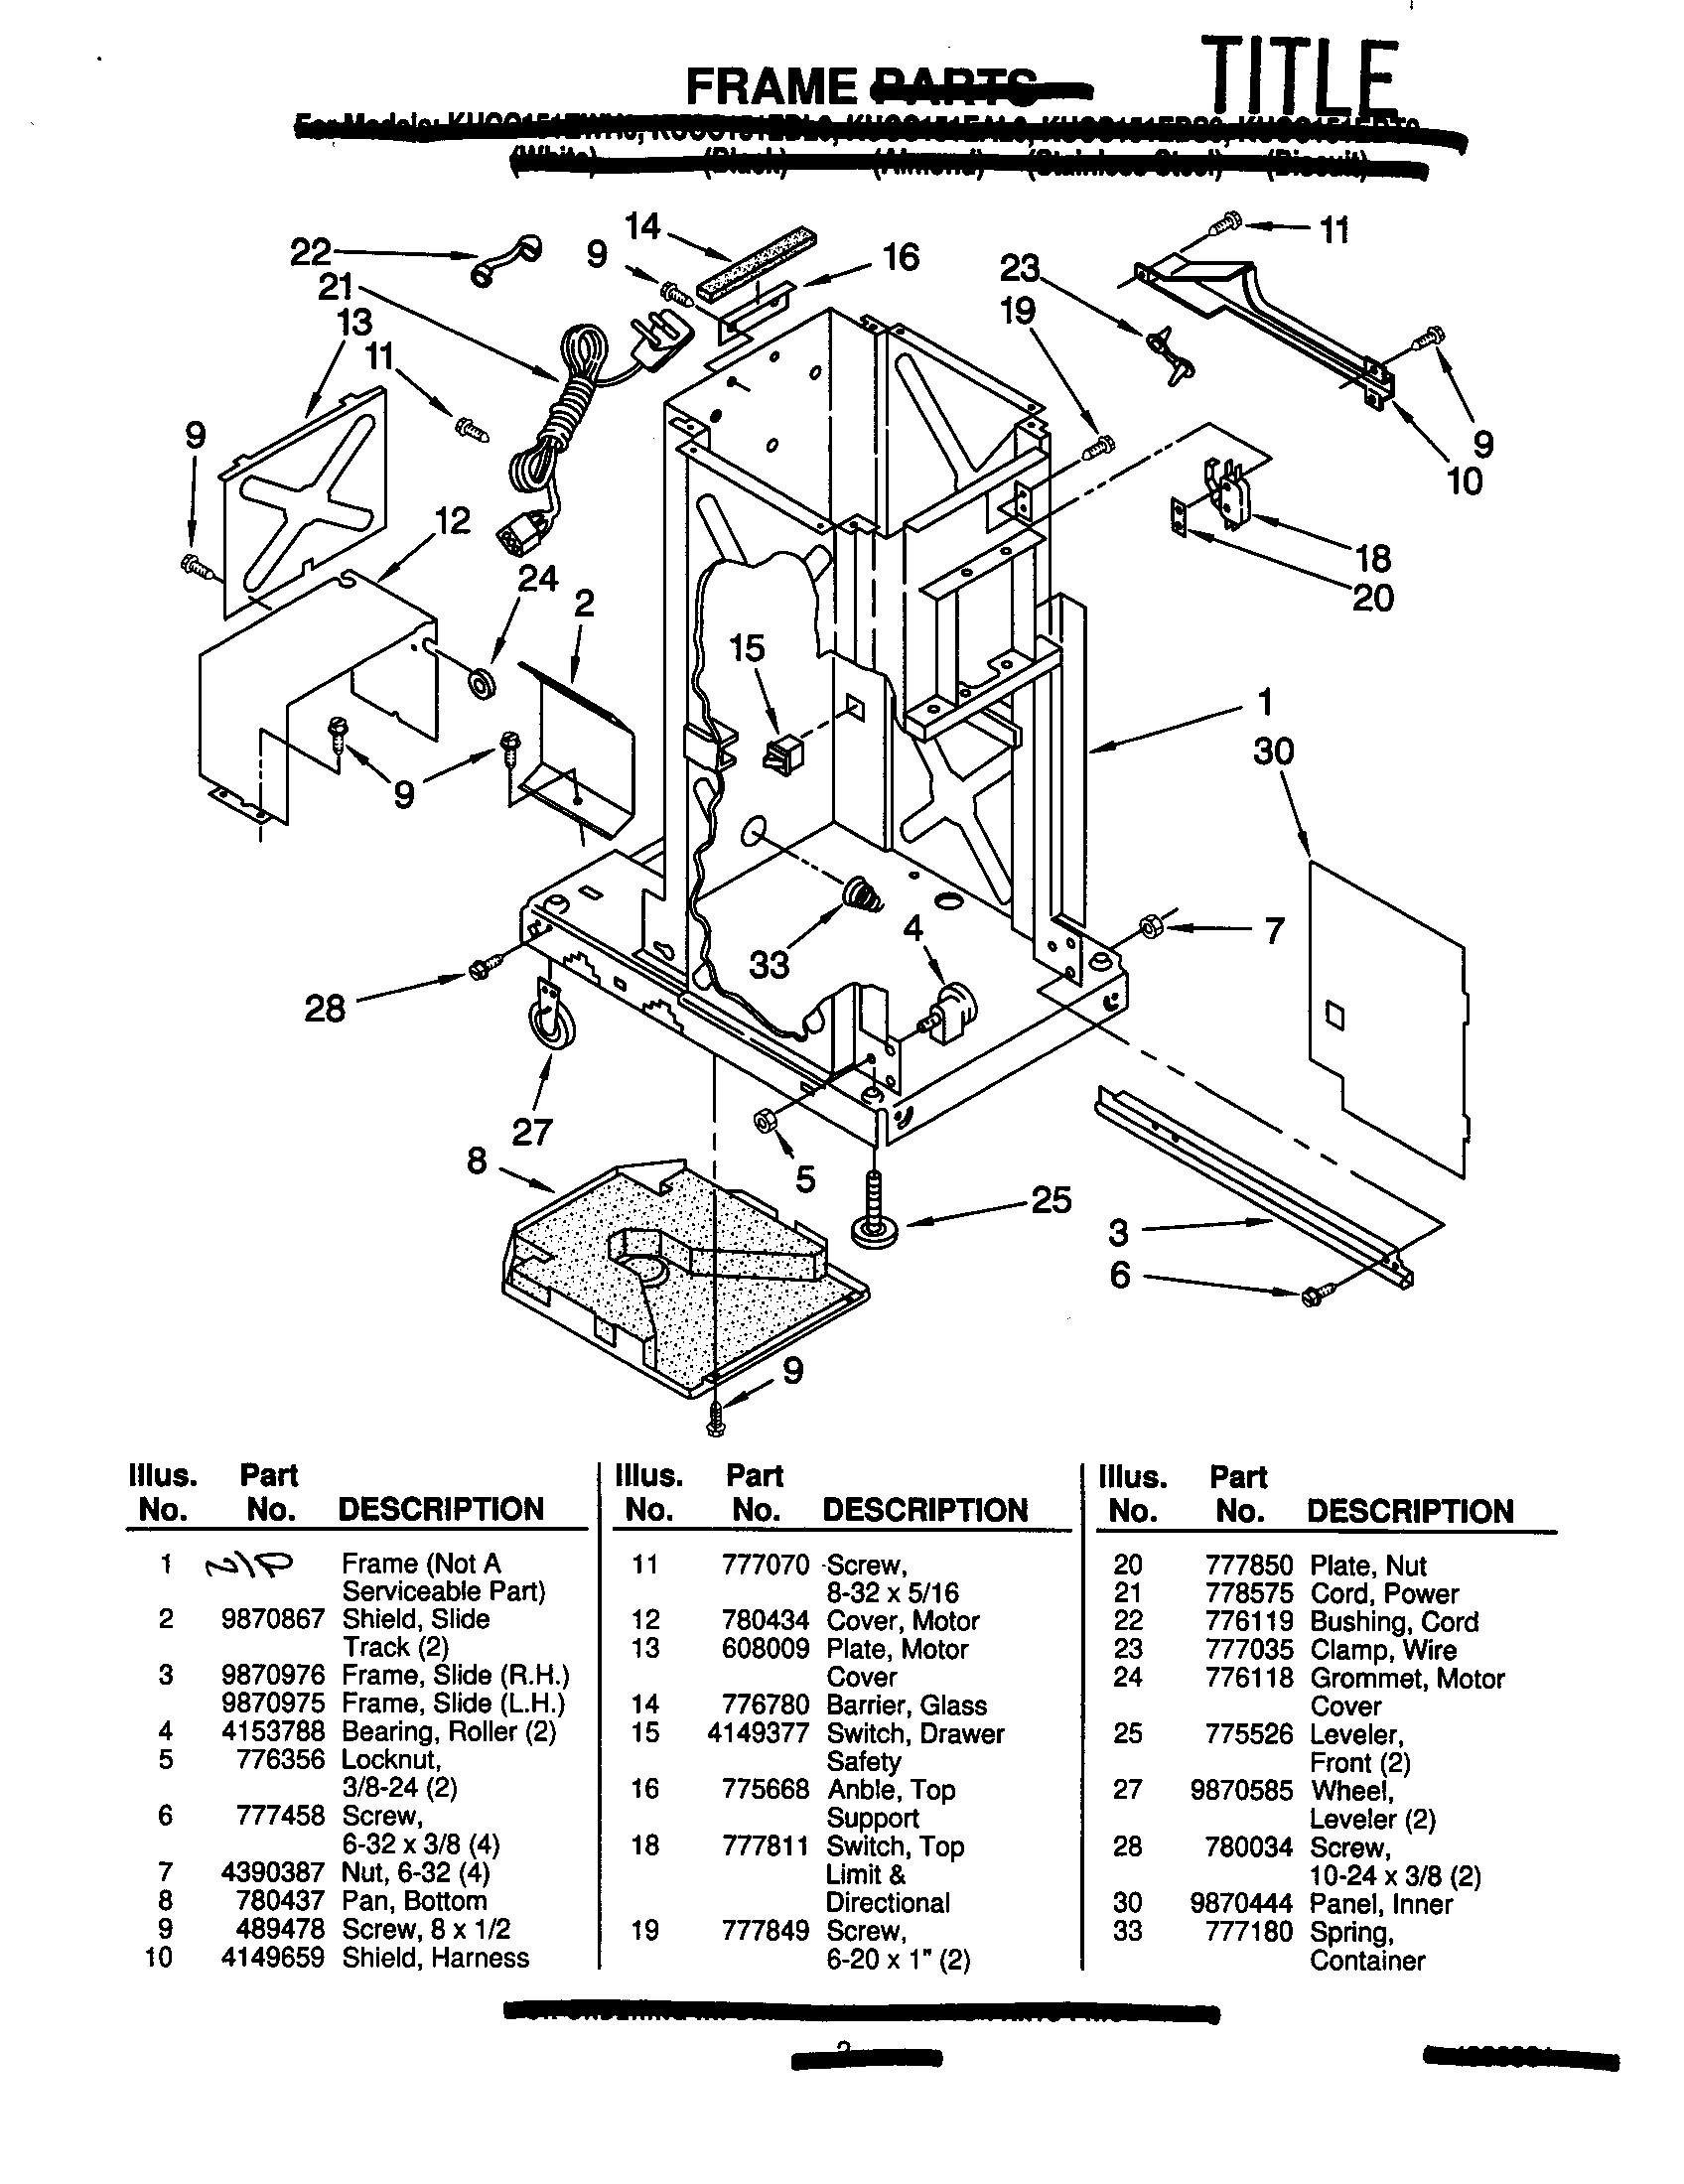 ge xl44 parts diagram kitchenaid model kucc151ewh0 pactors